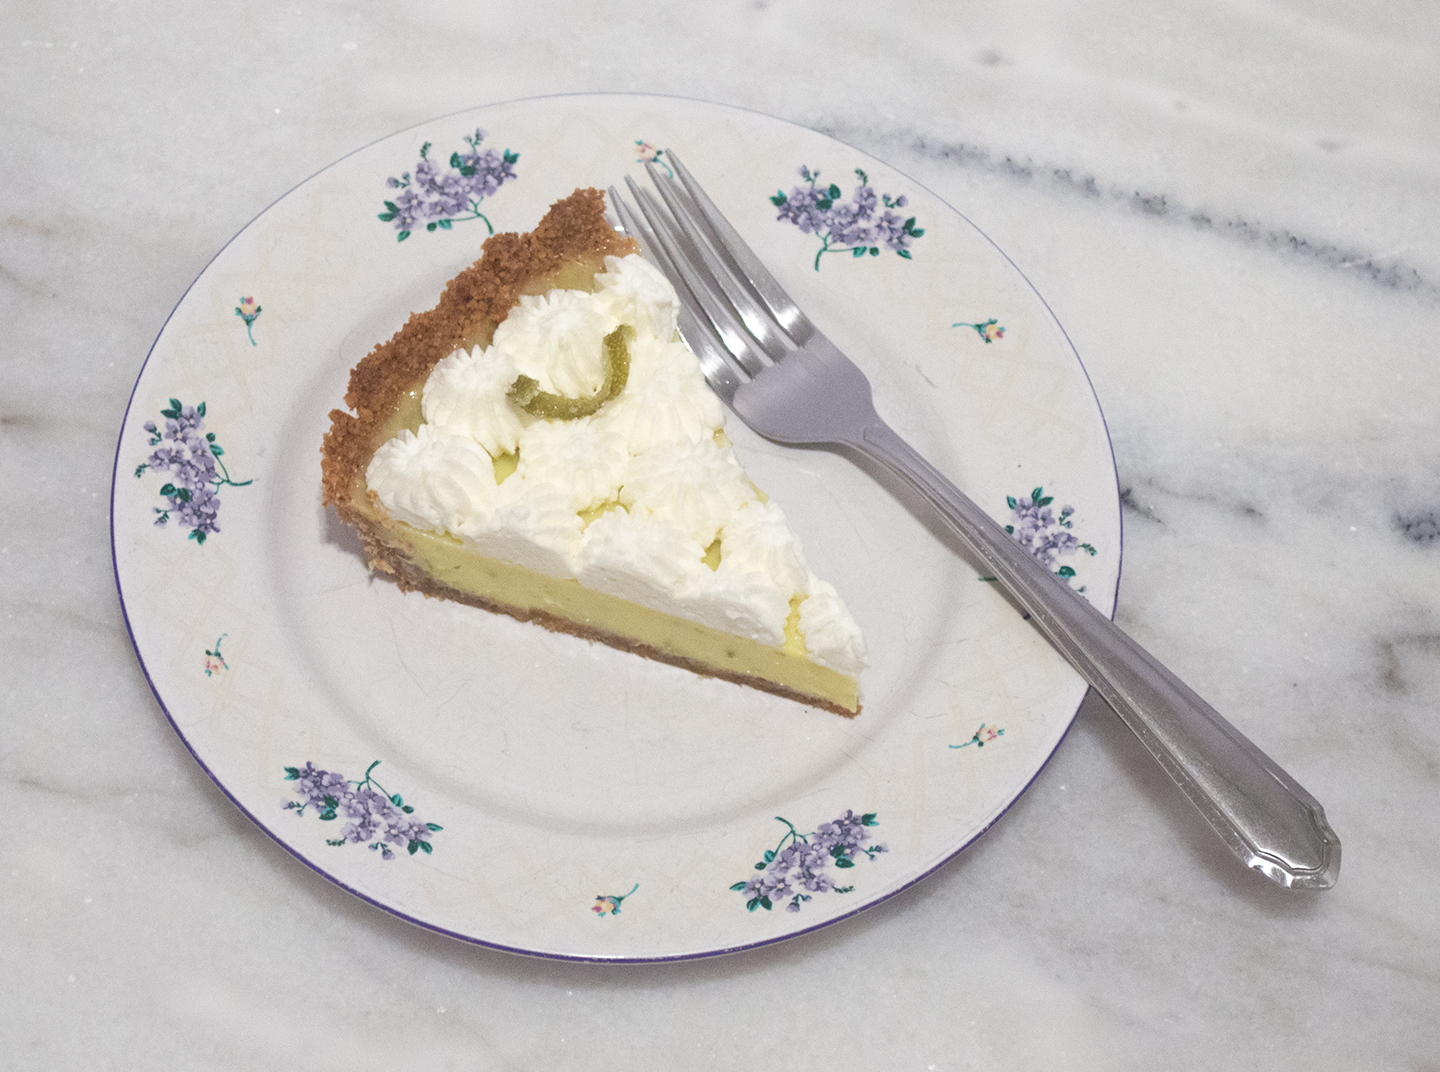 Slice of Key Lime Pie with Whipped Cream